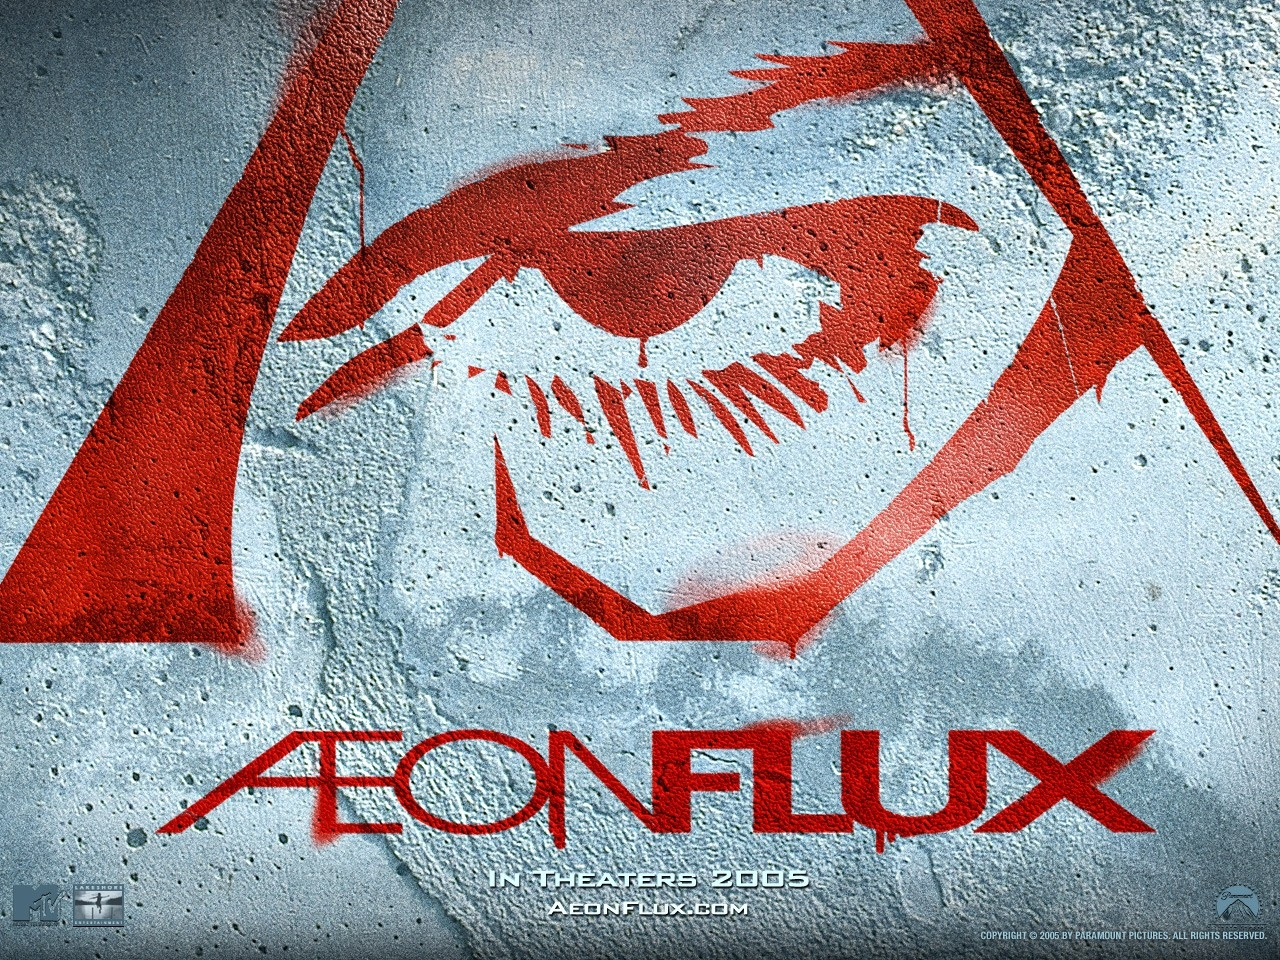 Desktop Wallpaper del film Aeon Flux